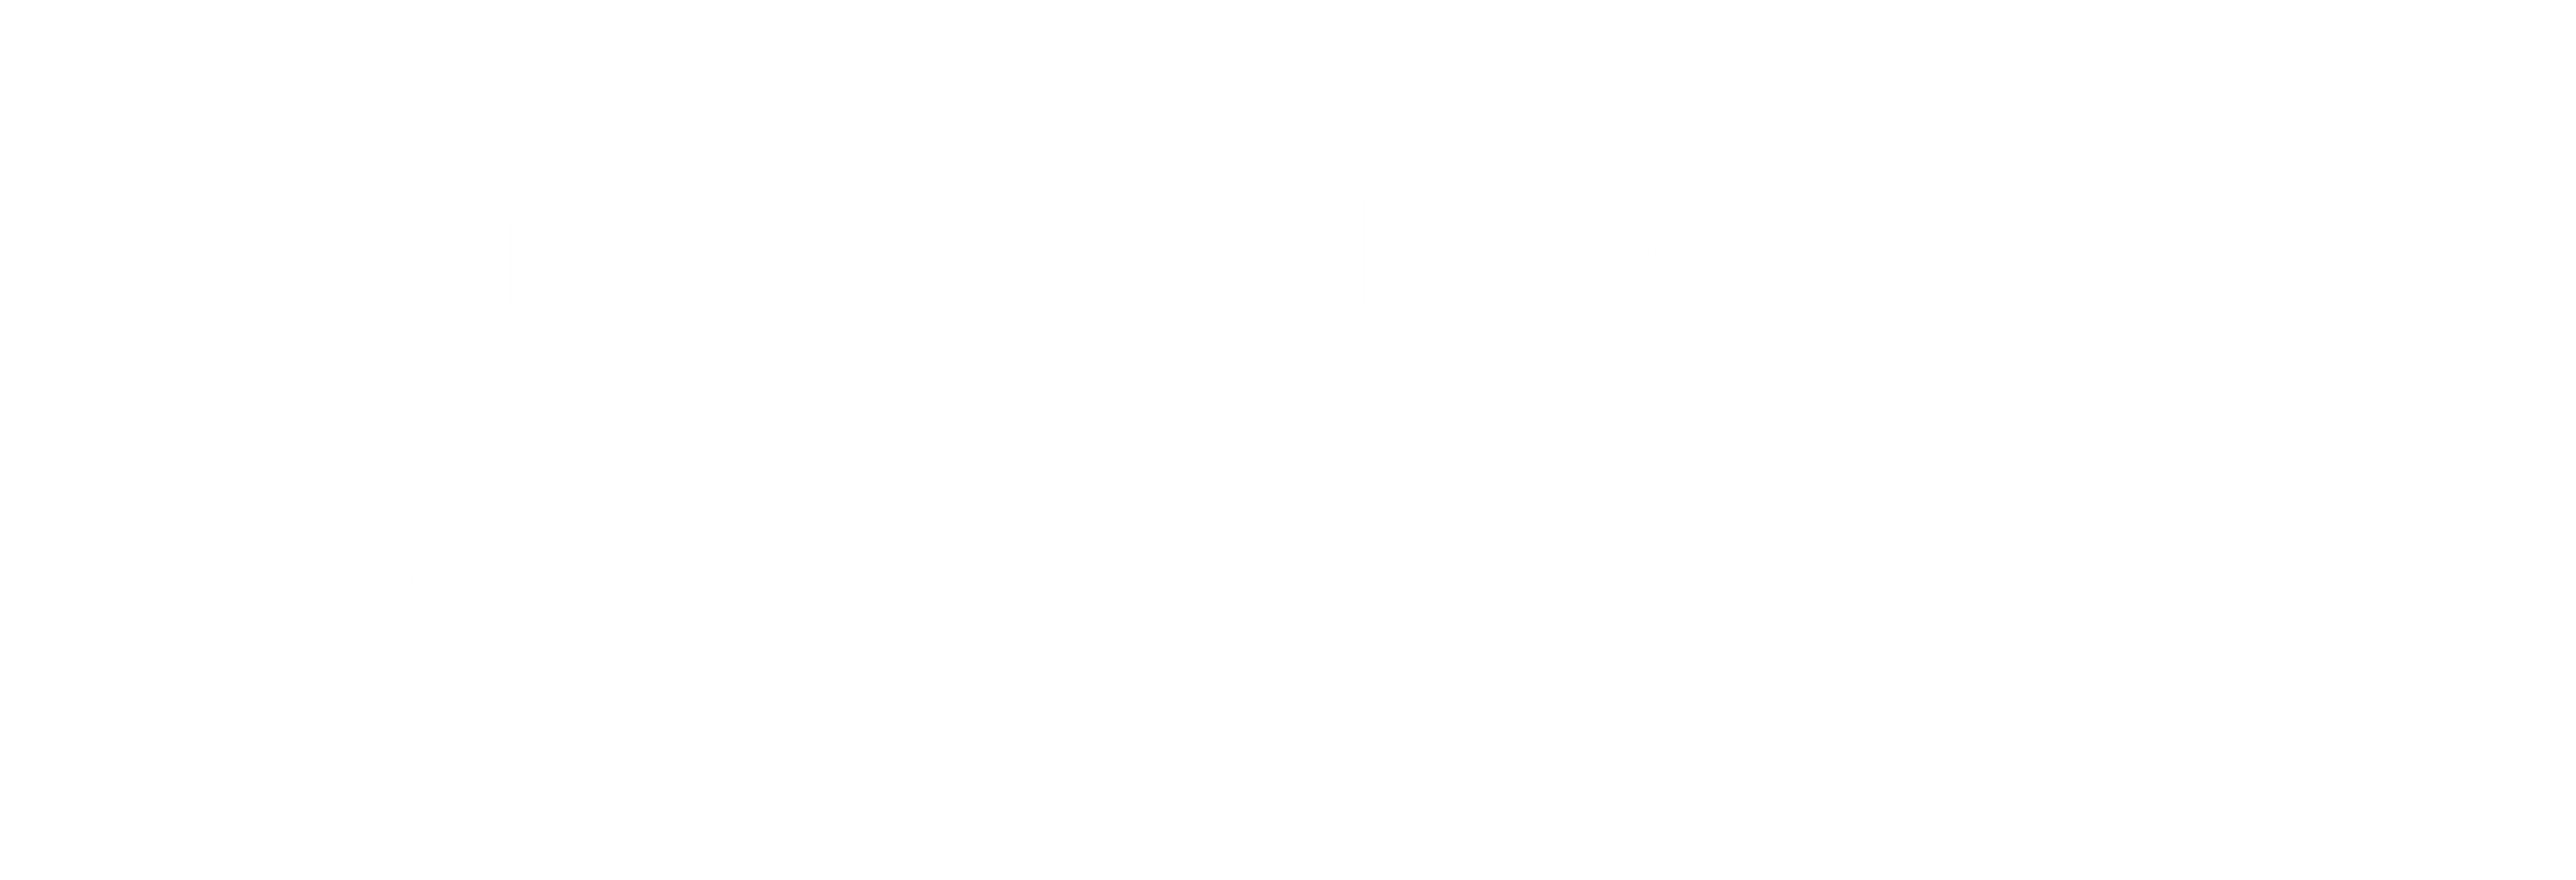 Tickets for Museum of Ice Cream San Francisco in San Francisco from ShowClix